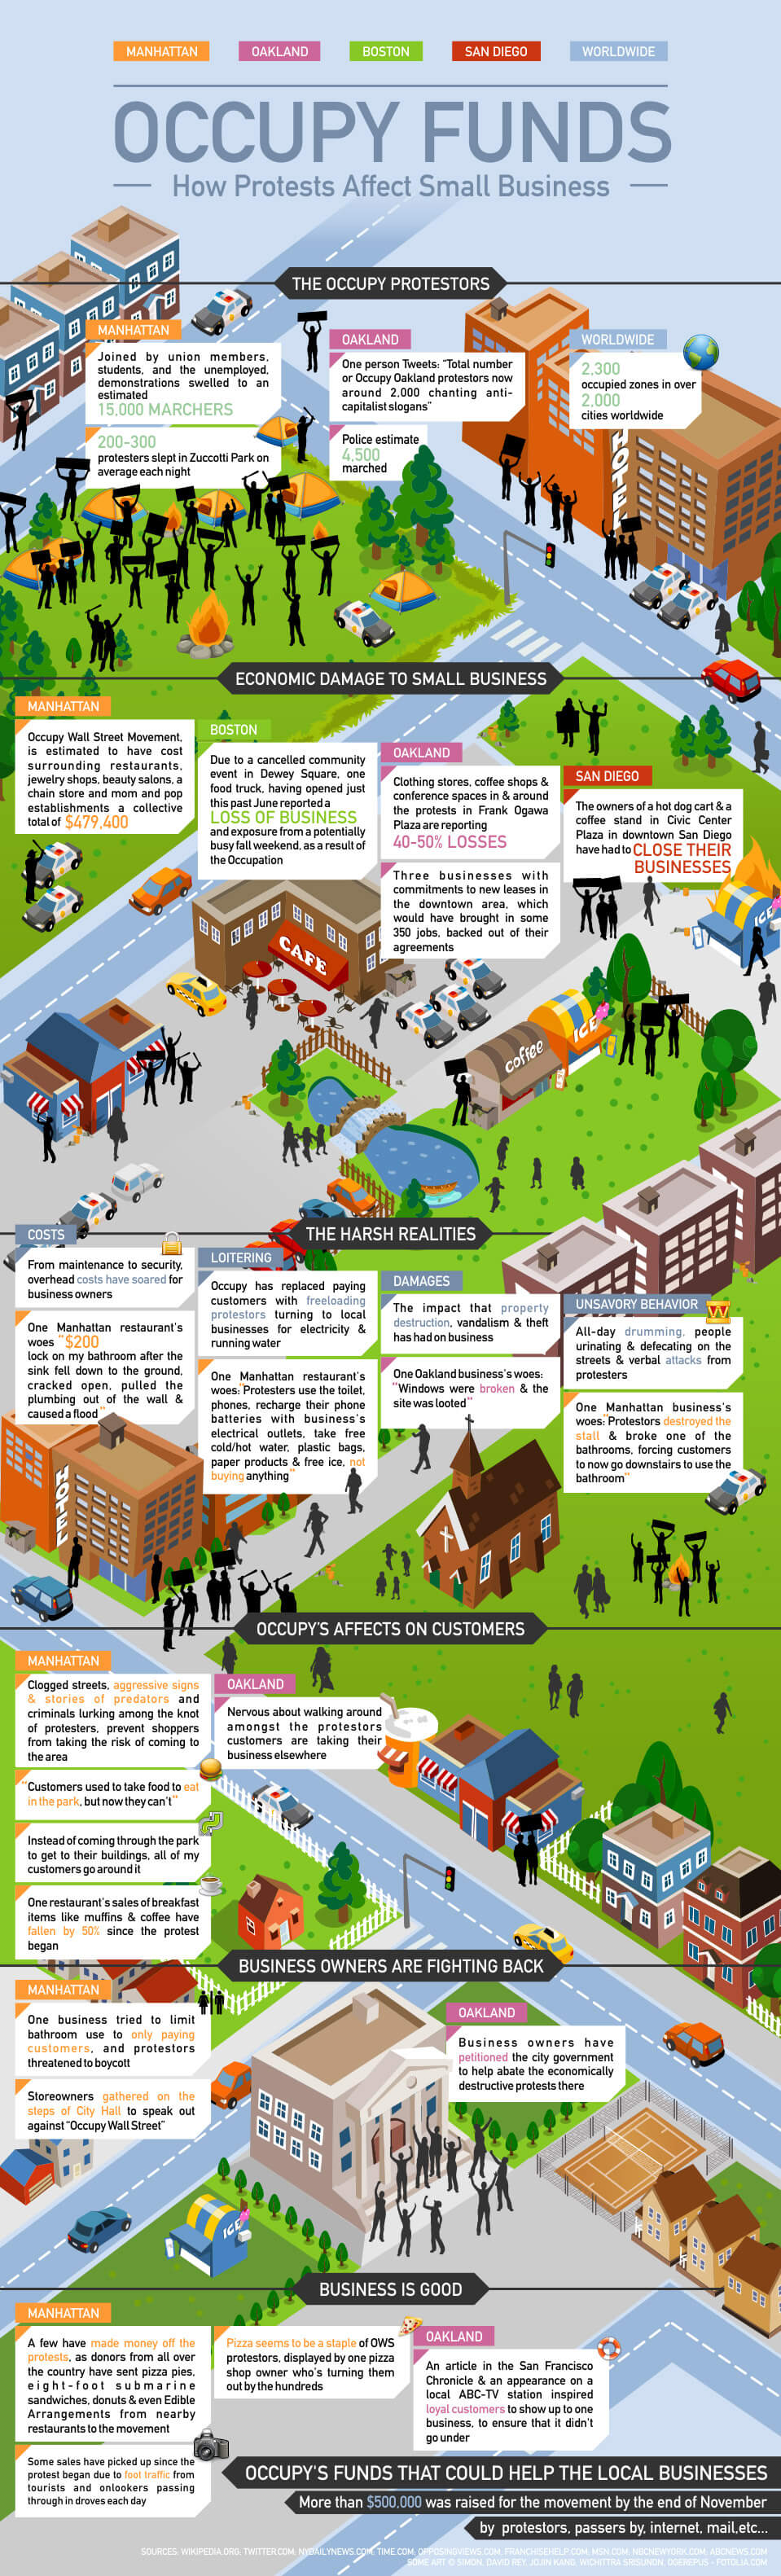 Occupy Funds: How Protests Affect Small Business [INFOGRAPHIC]